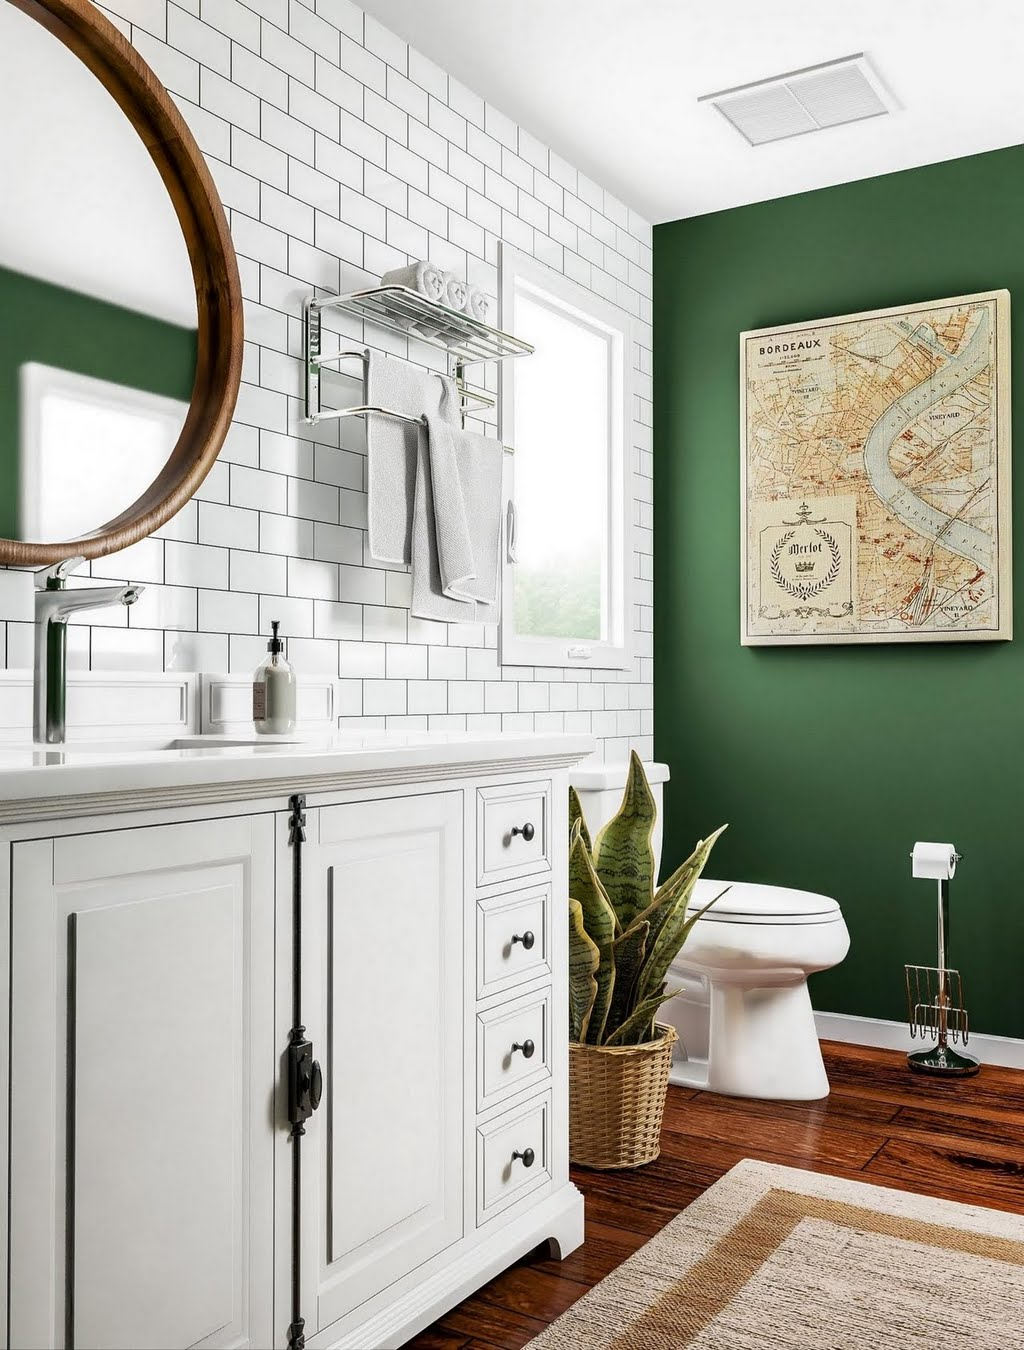 Modern Green Bathroom with Subway Tile – Bathroom – The Home Depot